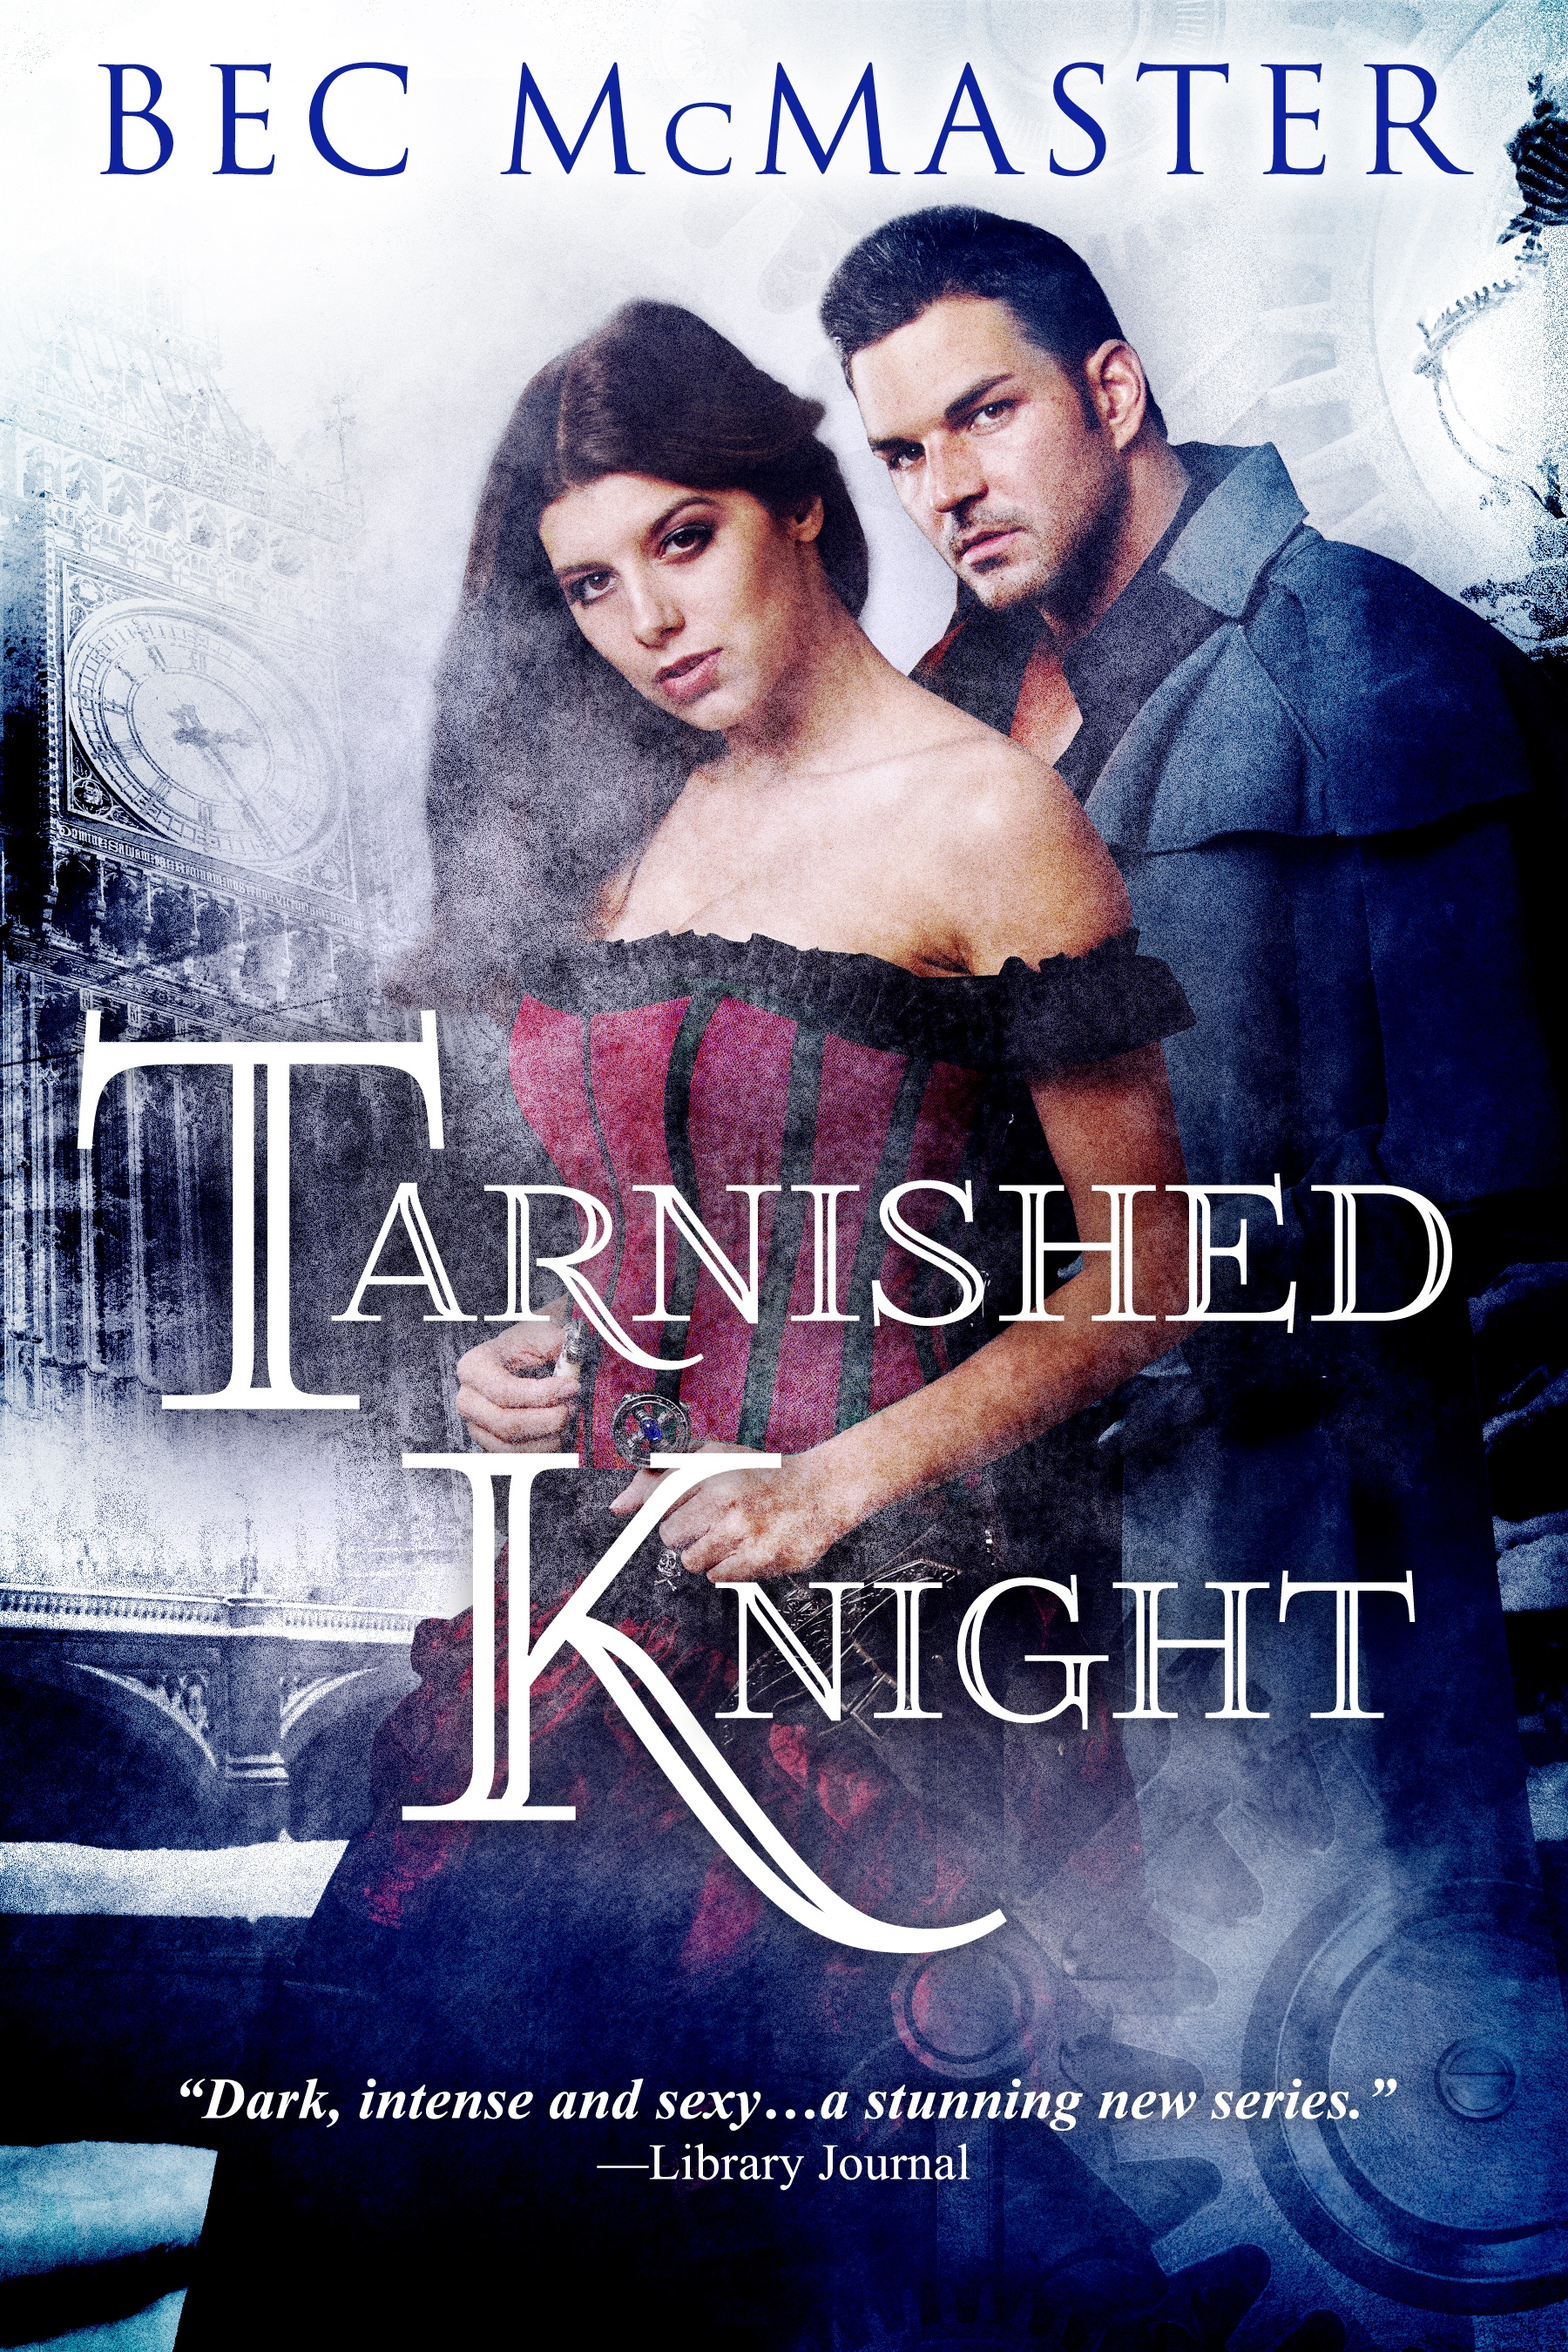 Image result for book cover tarnished knight bec mcmaster